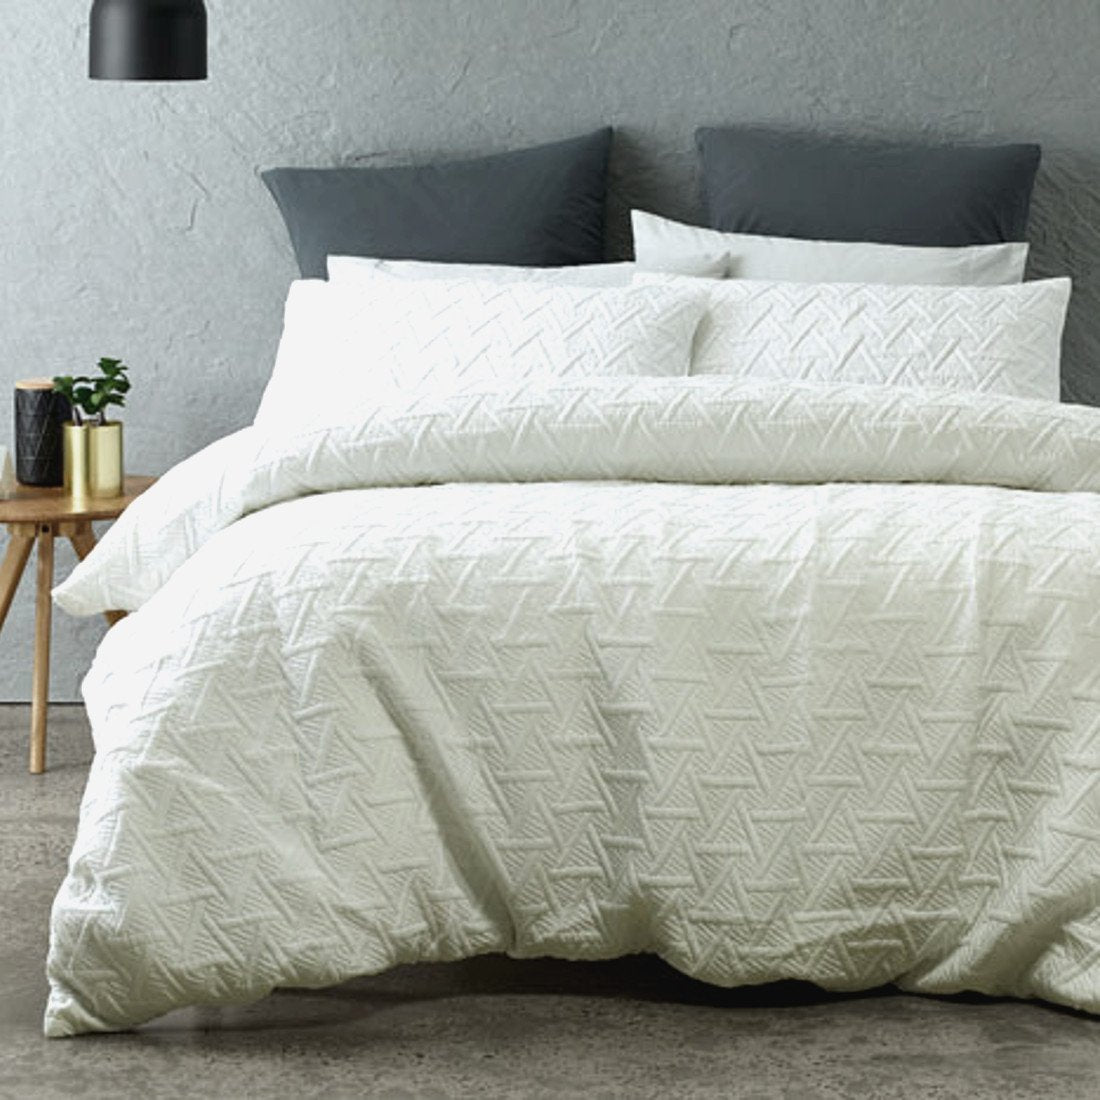 White duvet cover set is Sophisticated, Minimal and understated addition with the quilted effect fabric.